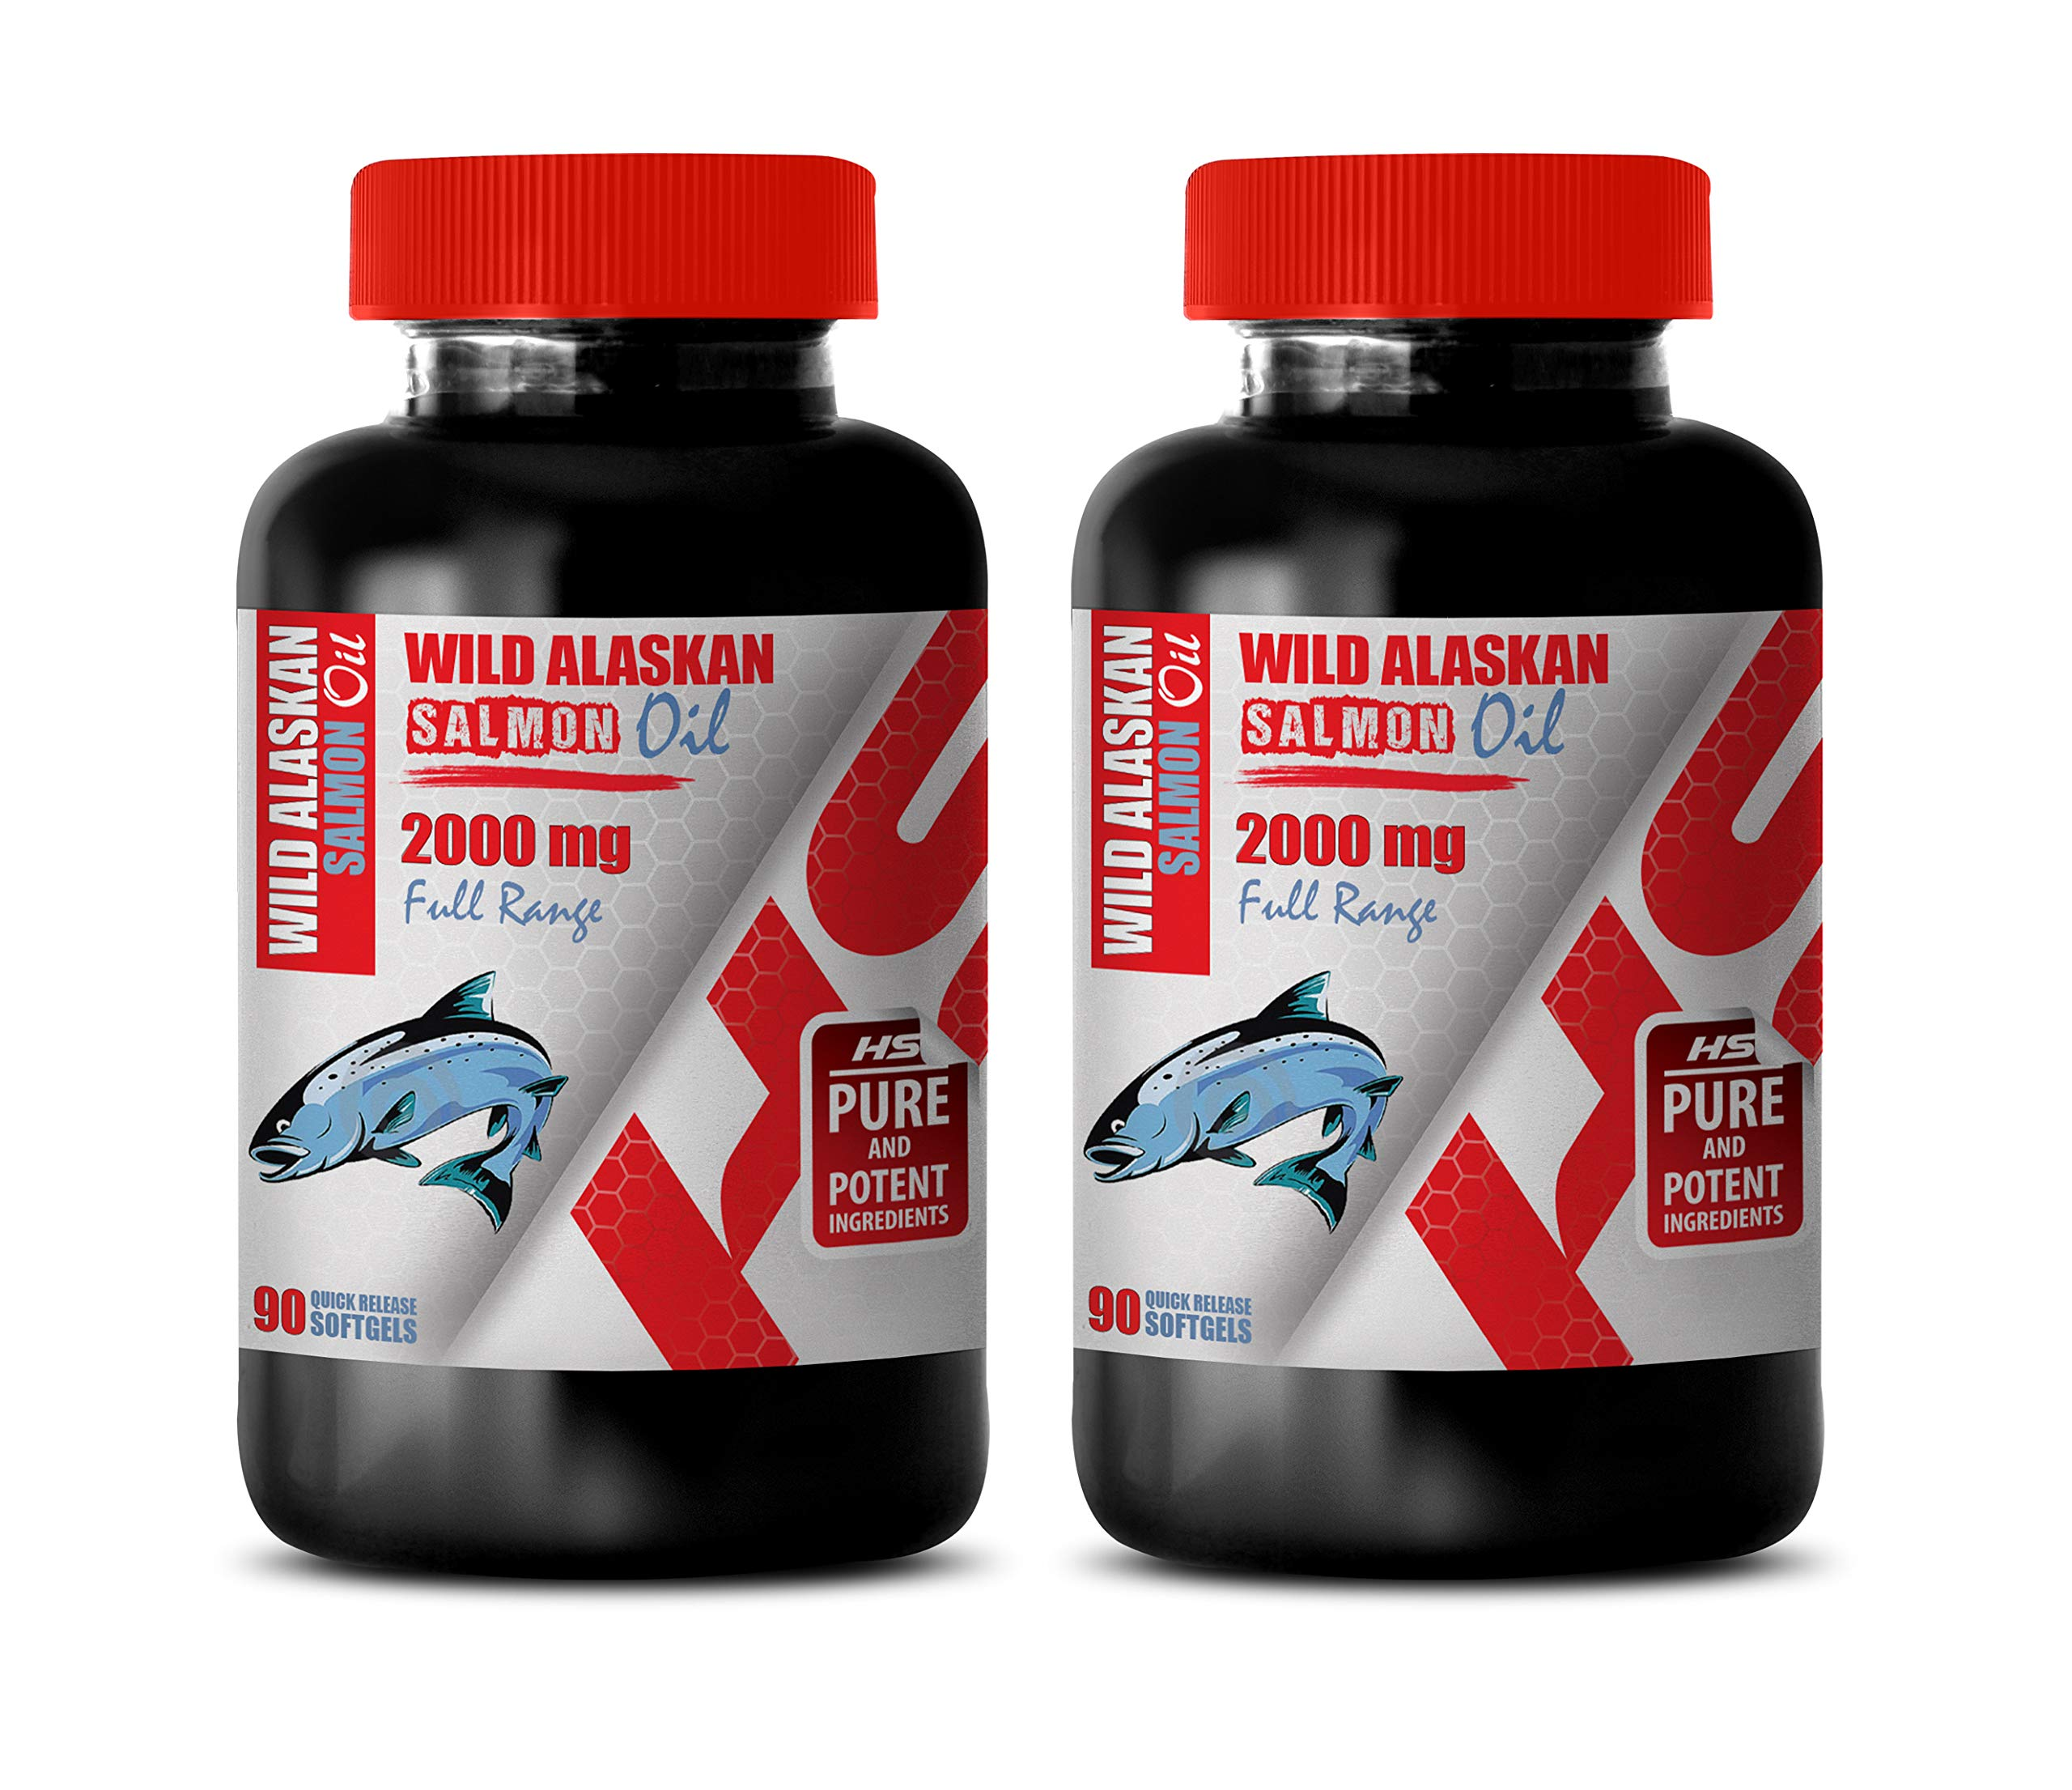 Heart Health Supplements - Wild Alaskan Salmon Oil 2000 Mg Full Range - Fish Oil Omega 3 for Memory - 2 Bottles 180 Softgels